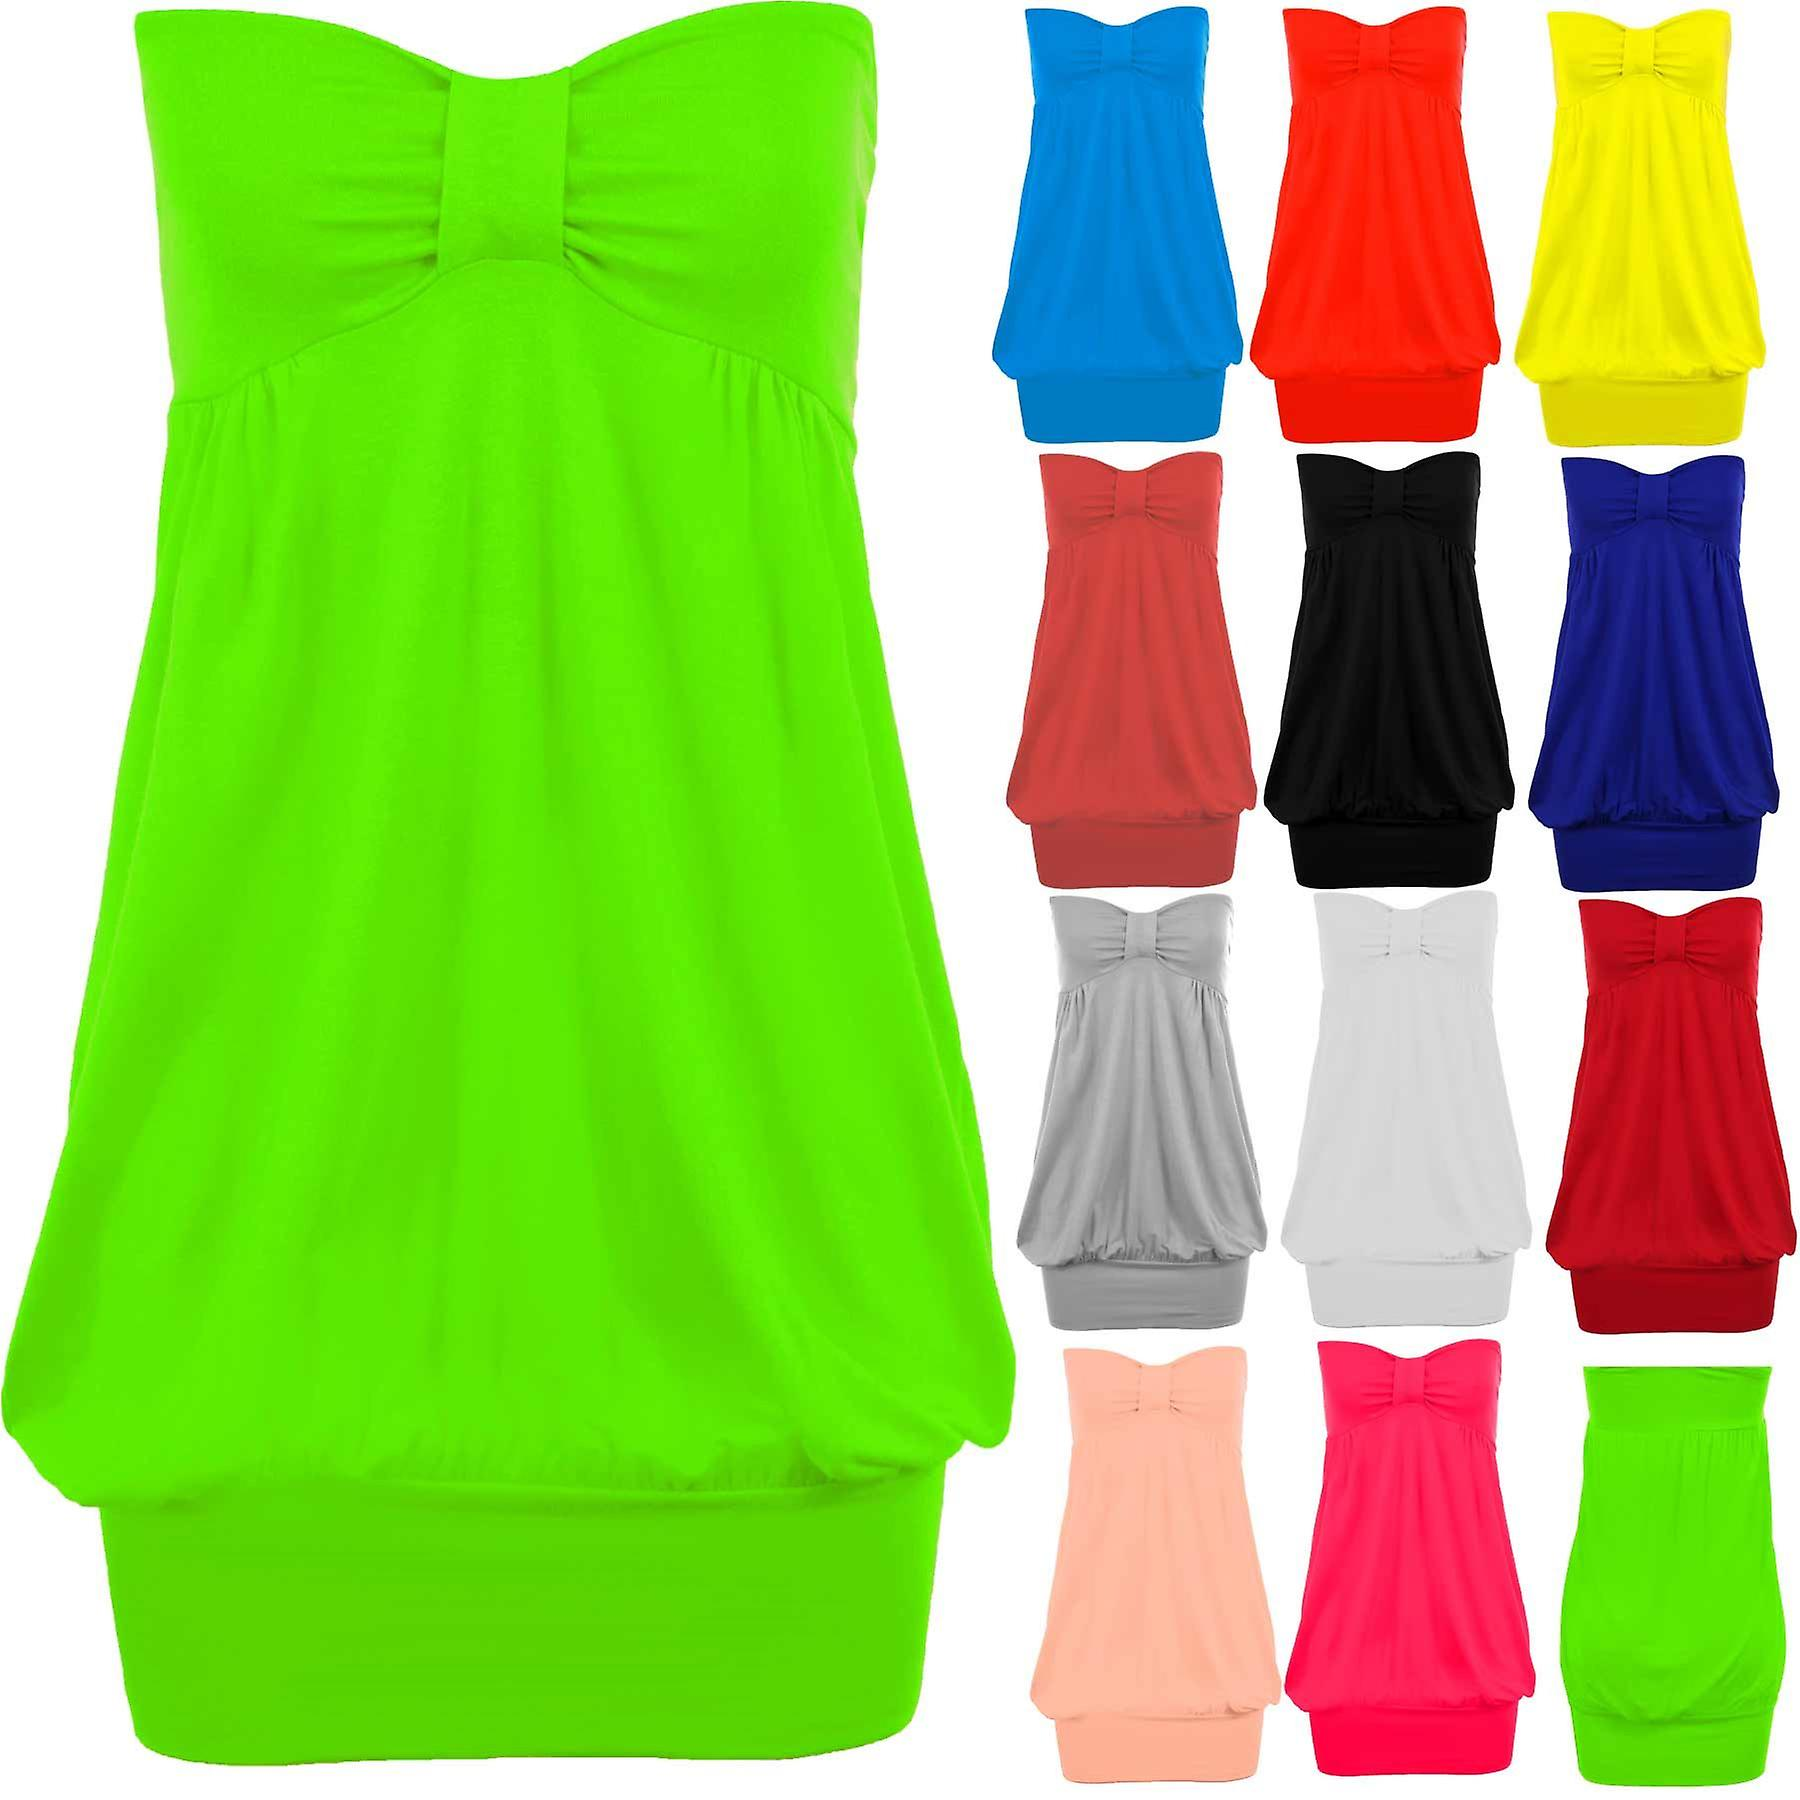 Ladies Boobtube Strapless Knot Plus Size Women's Bandeau Party Casual Top